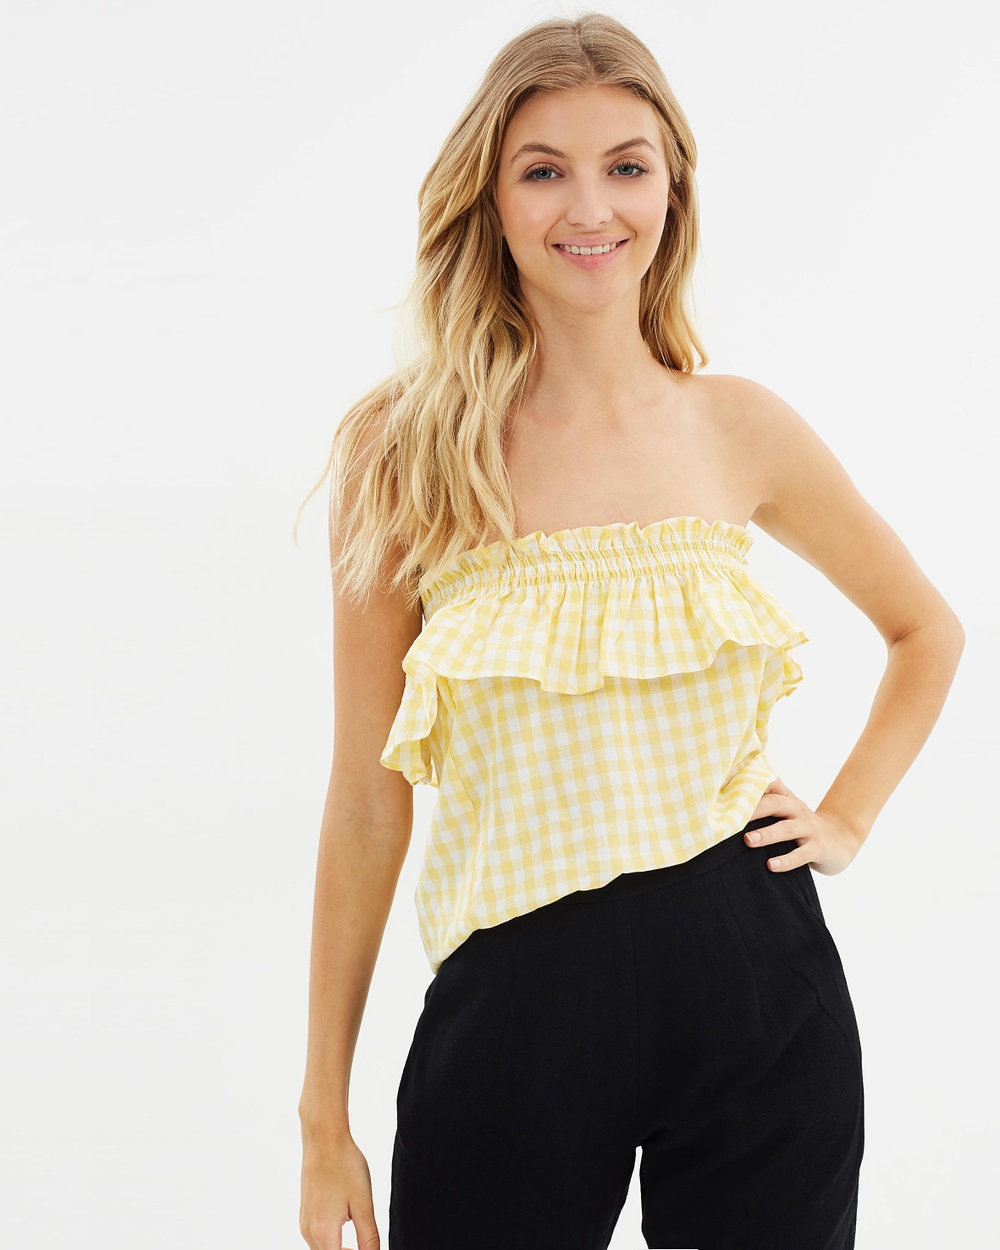 Atmos & Here ICONIC EXCLUSIVE Tanny Strapless Shirred Frill Top Tops White & Yellow Gingham ICONIC EXCLUSIVE Tanny Strapless Shirred Frill Top